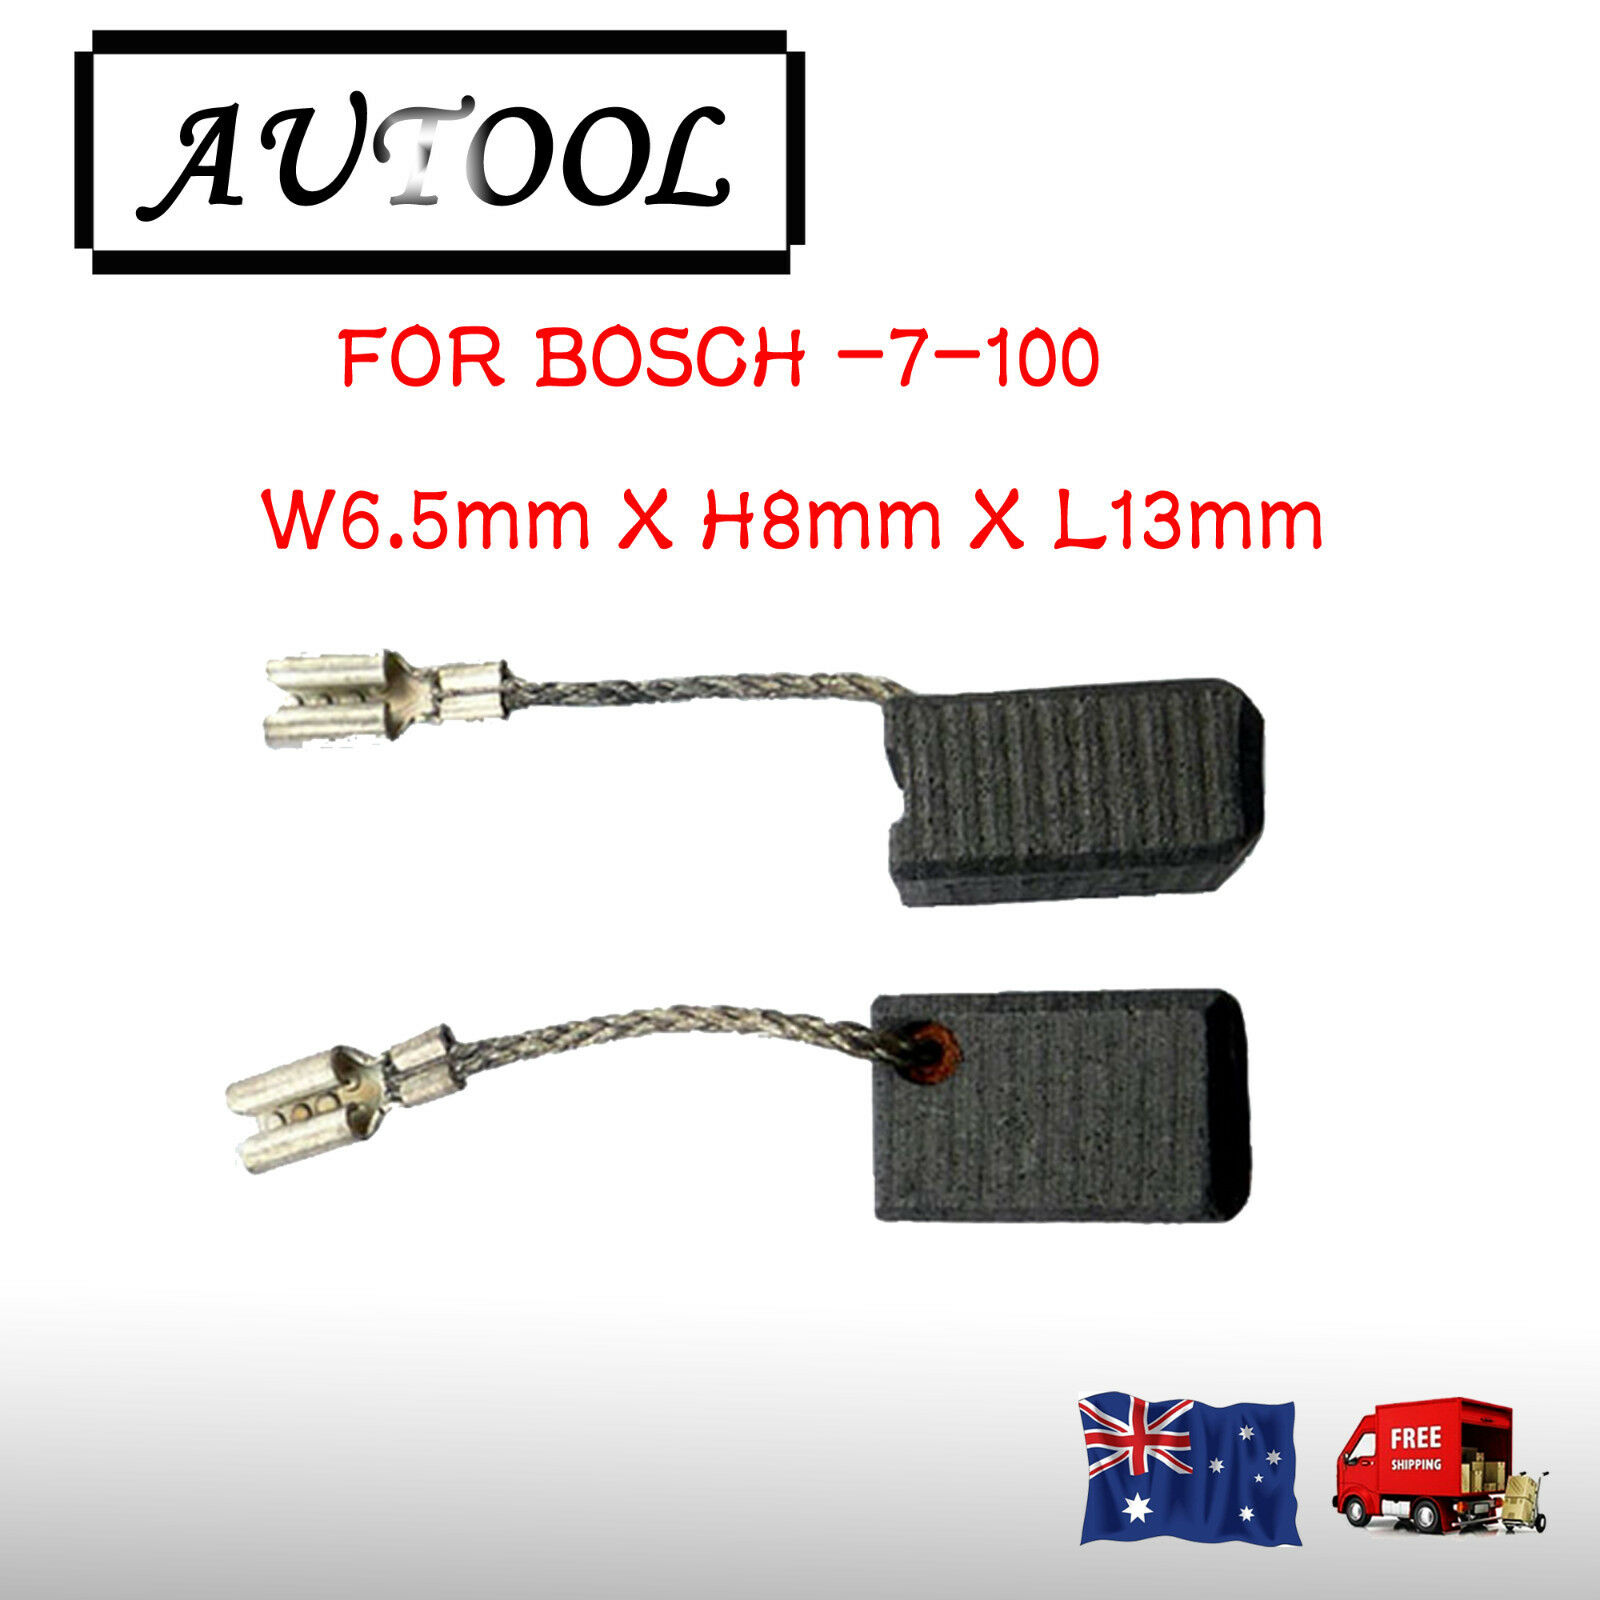 gaixample.org 2.0x3.1x7.1 5x8x18mm Carbon Brushes for Bosch PWS 7 ...